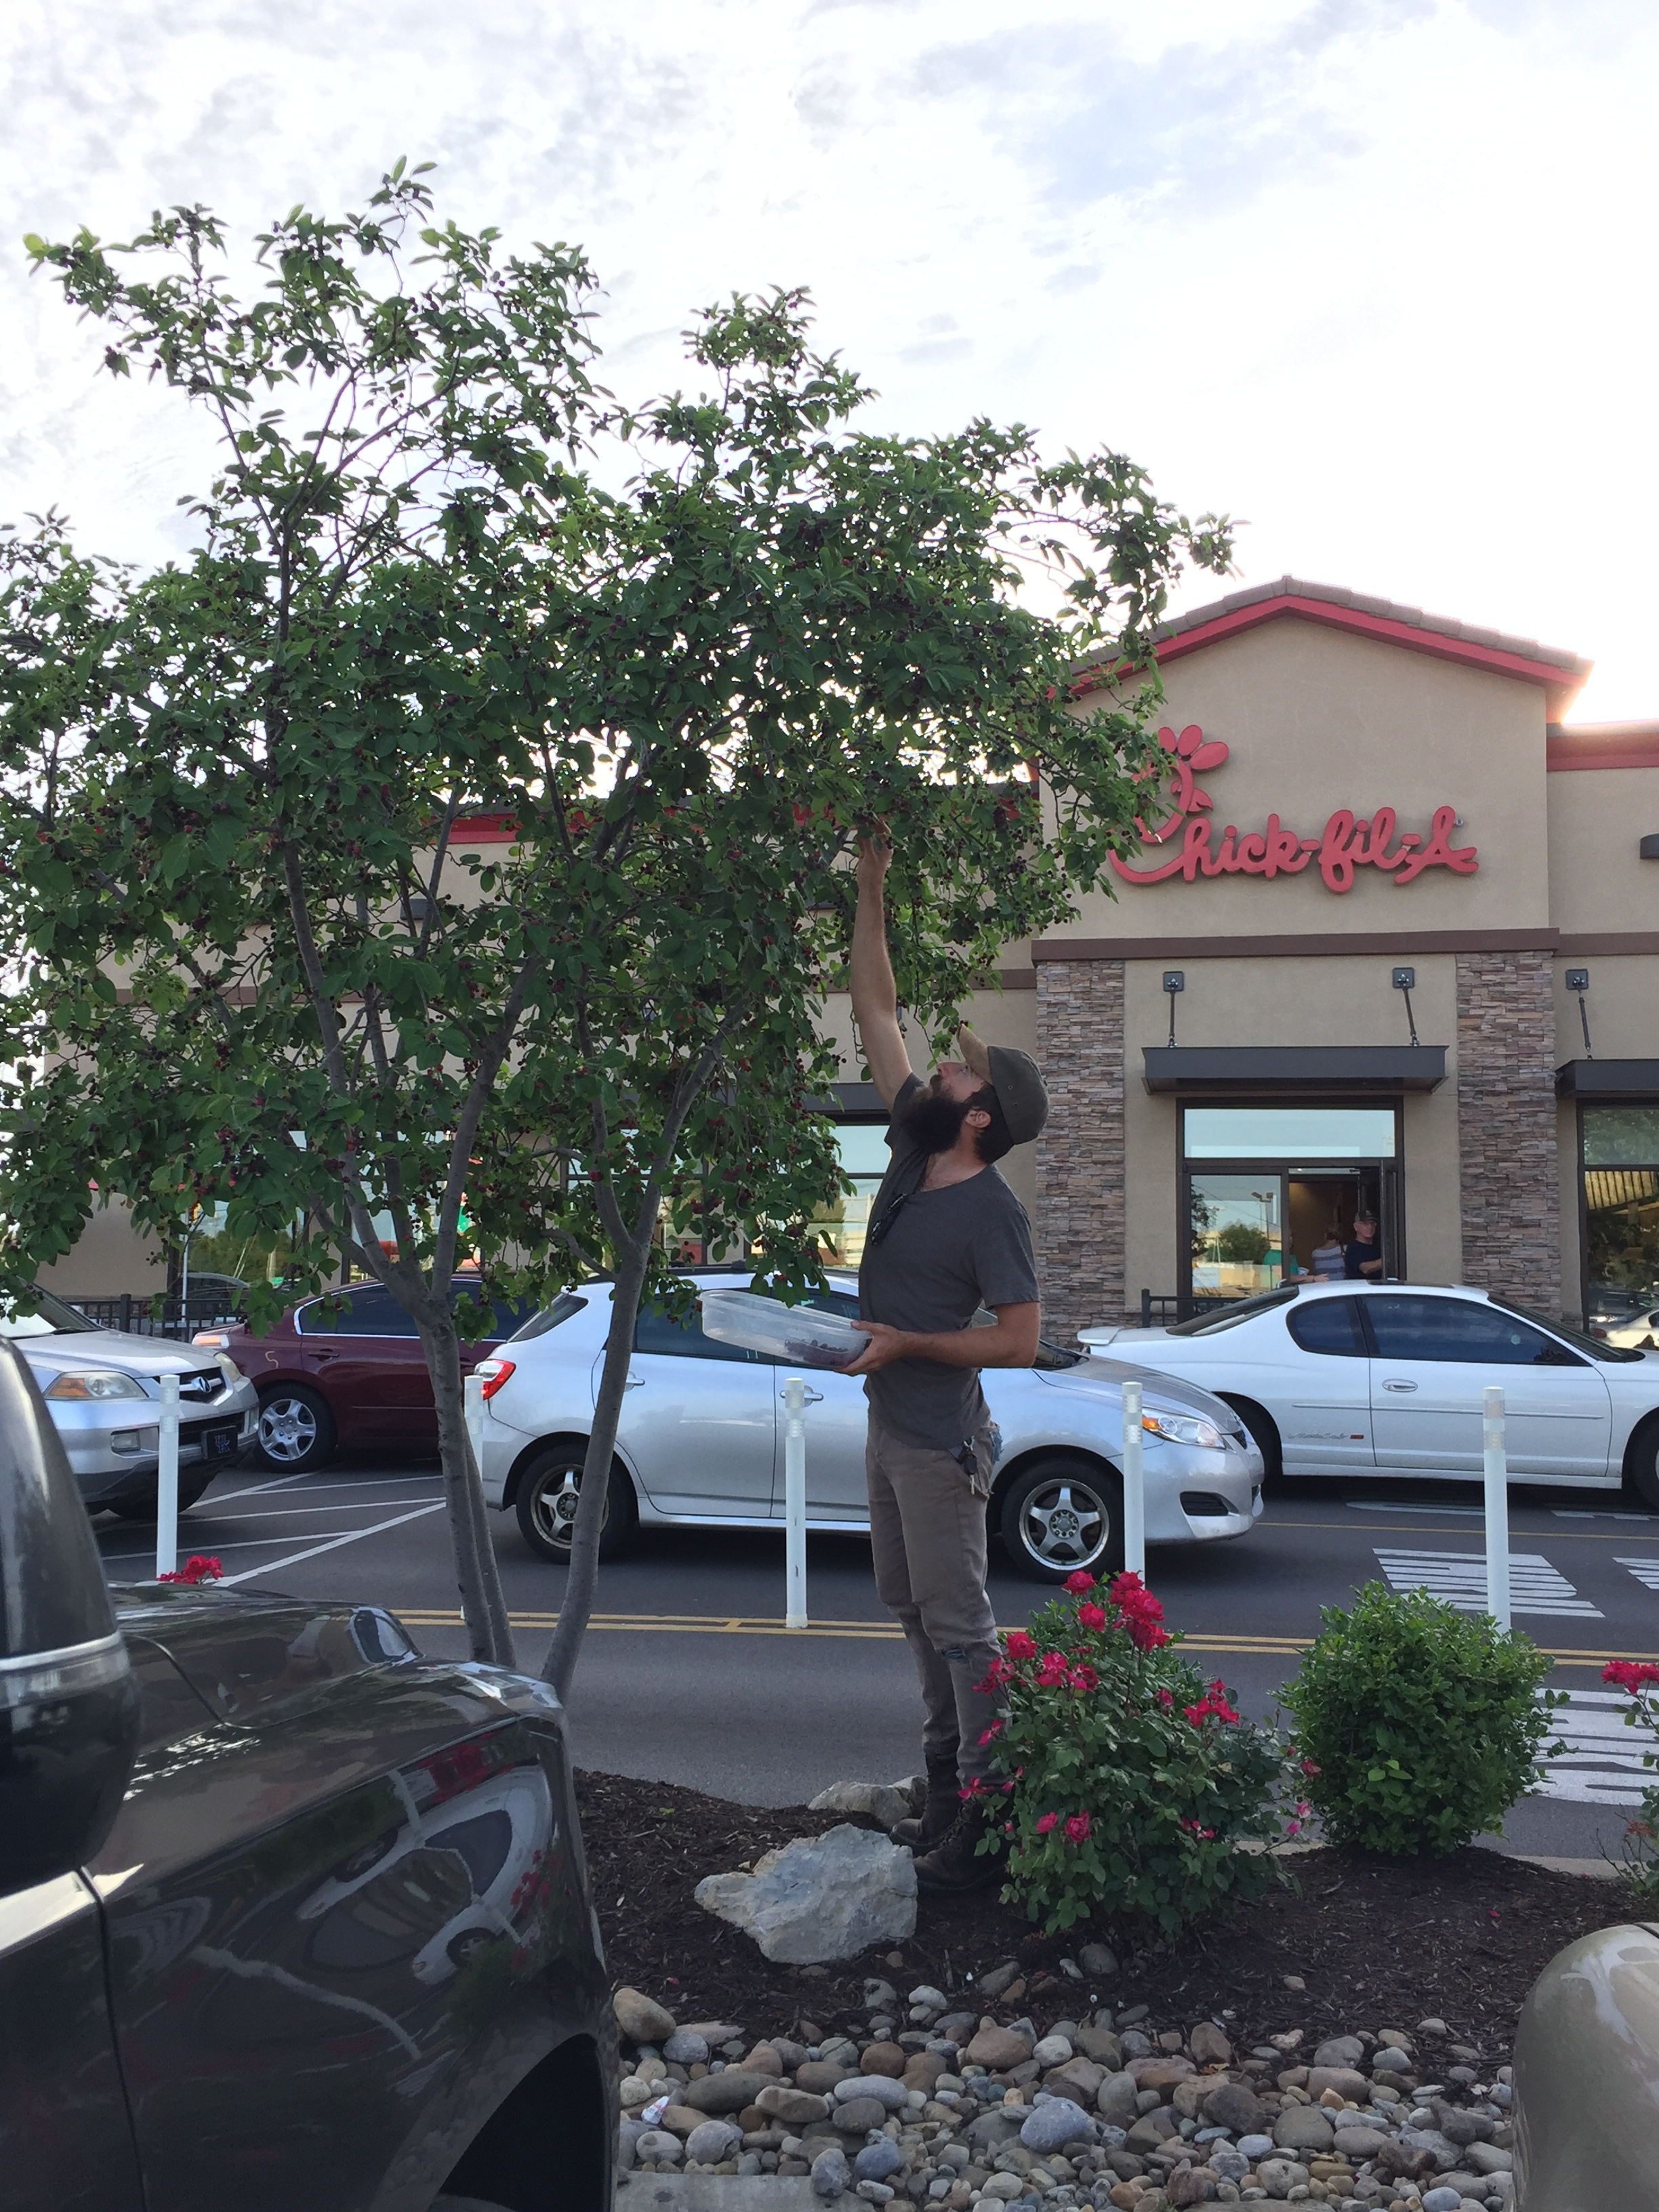 The author gathers edible serviceberries in a Chick-fil-a parking lot in suburban Louisville, KY.